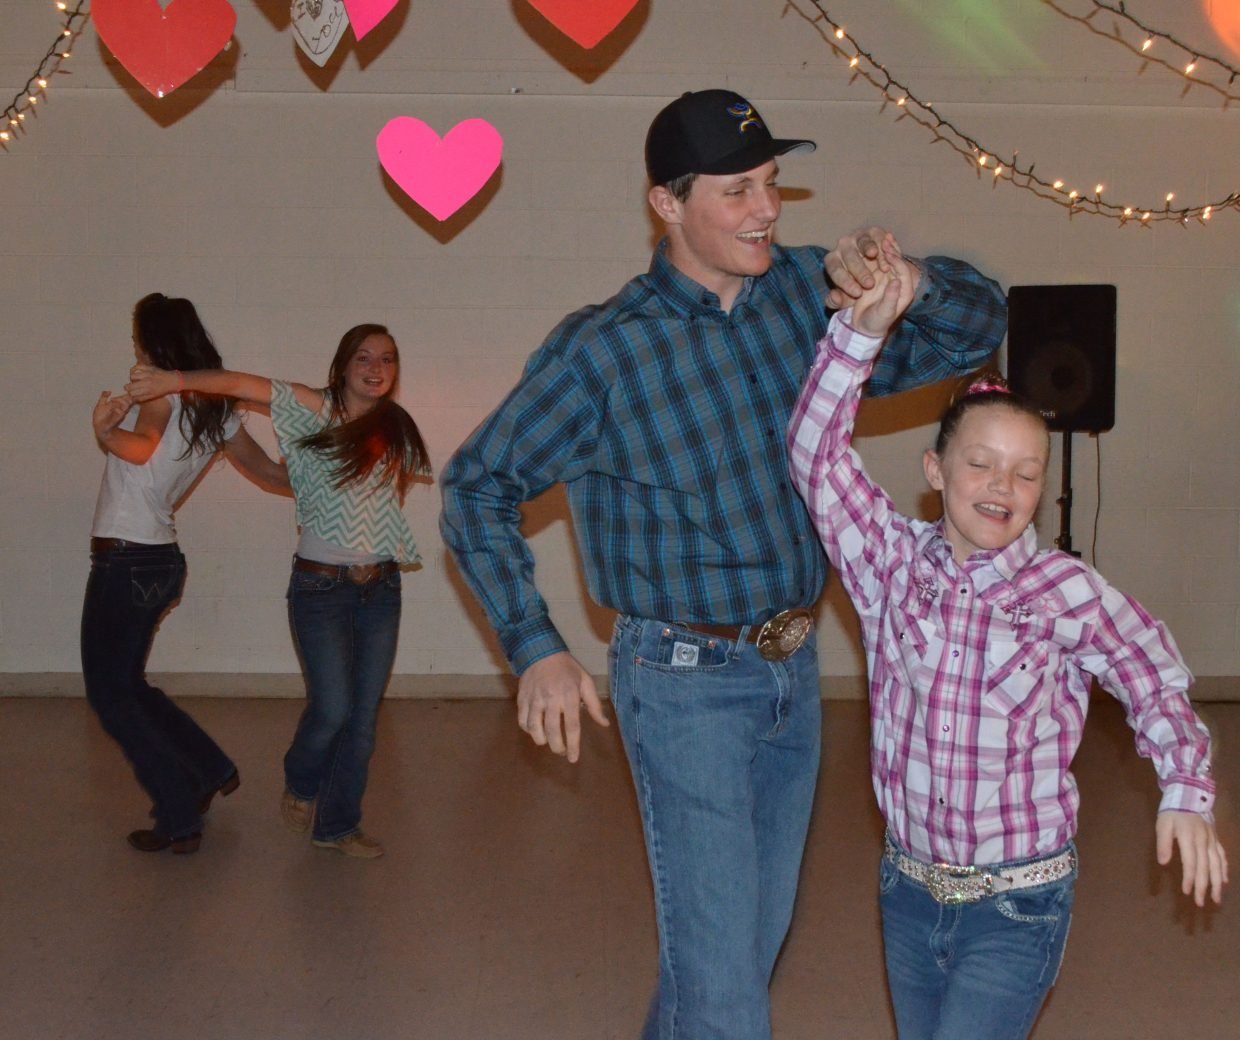 Young dancers including Toryn Hume and sister Taylen, foreground, take a spin on the dance floor at Center of Craig during the Valentine's Dance as part of Art Walk and Taste of Chocolate.